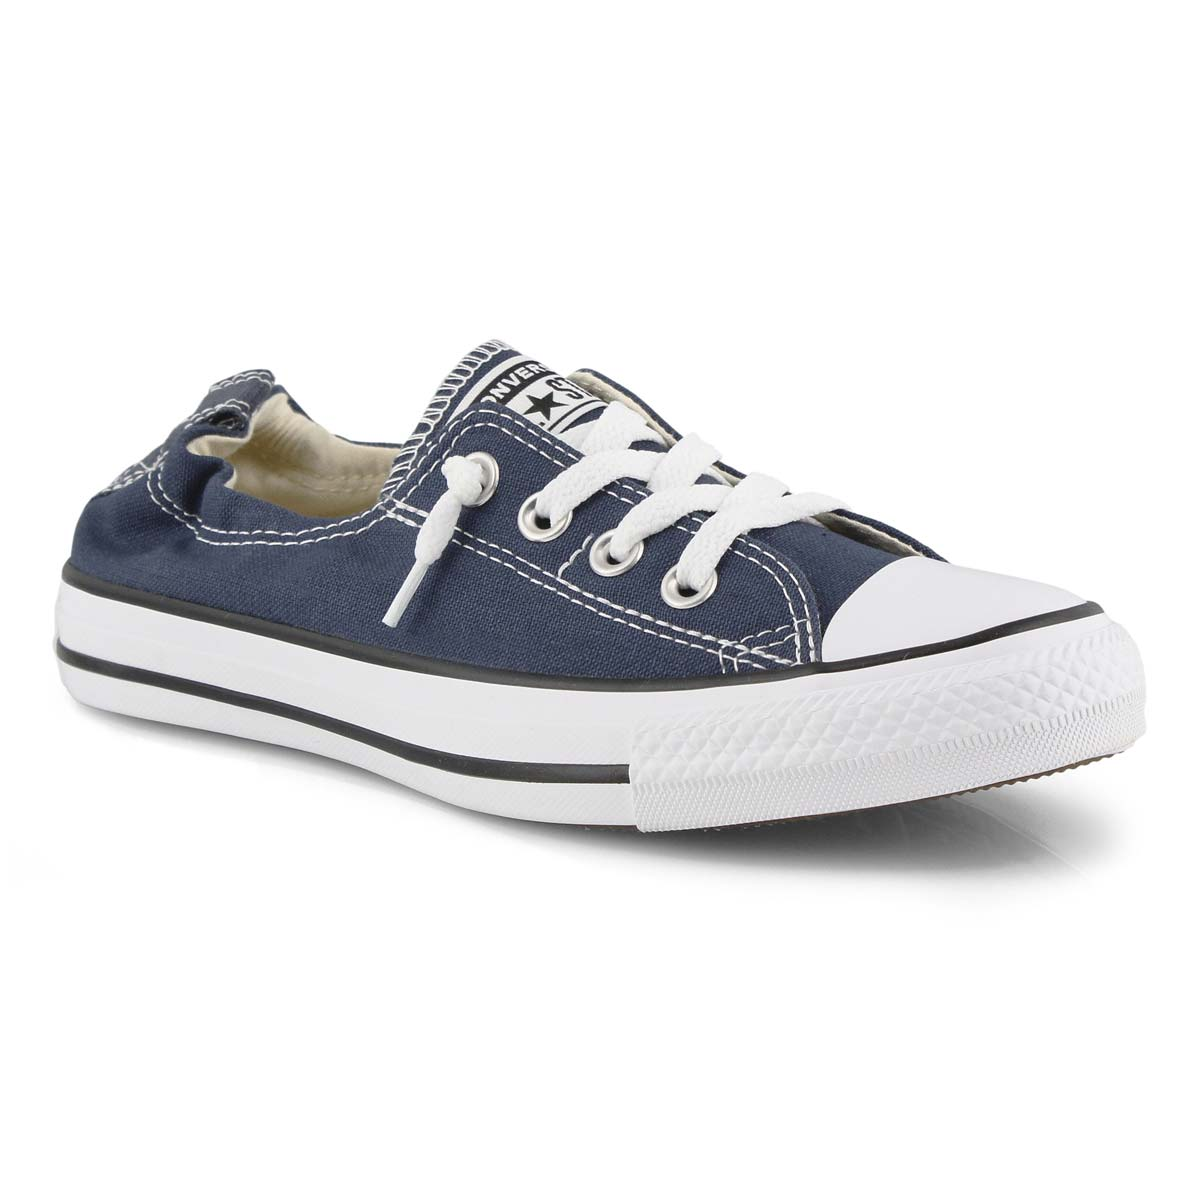 Lds CT A/S Shoreline navy sneaker